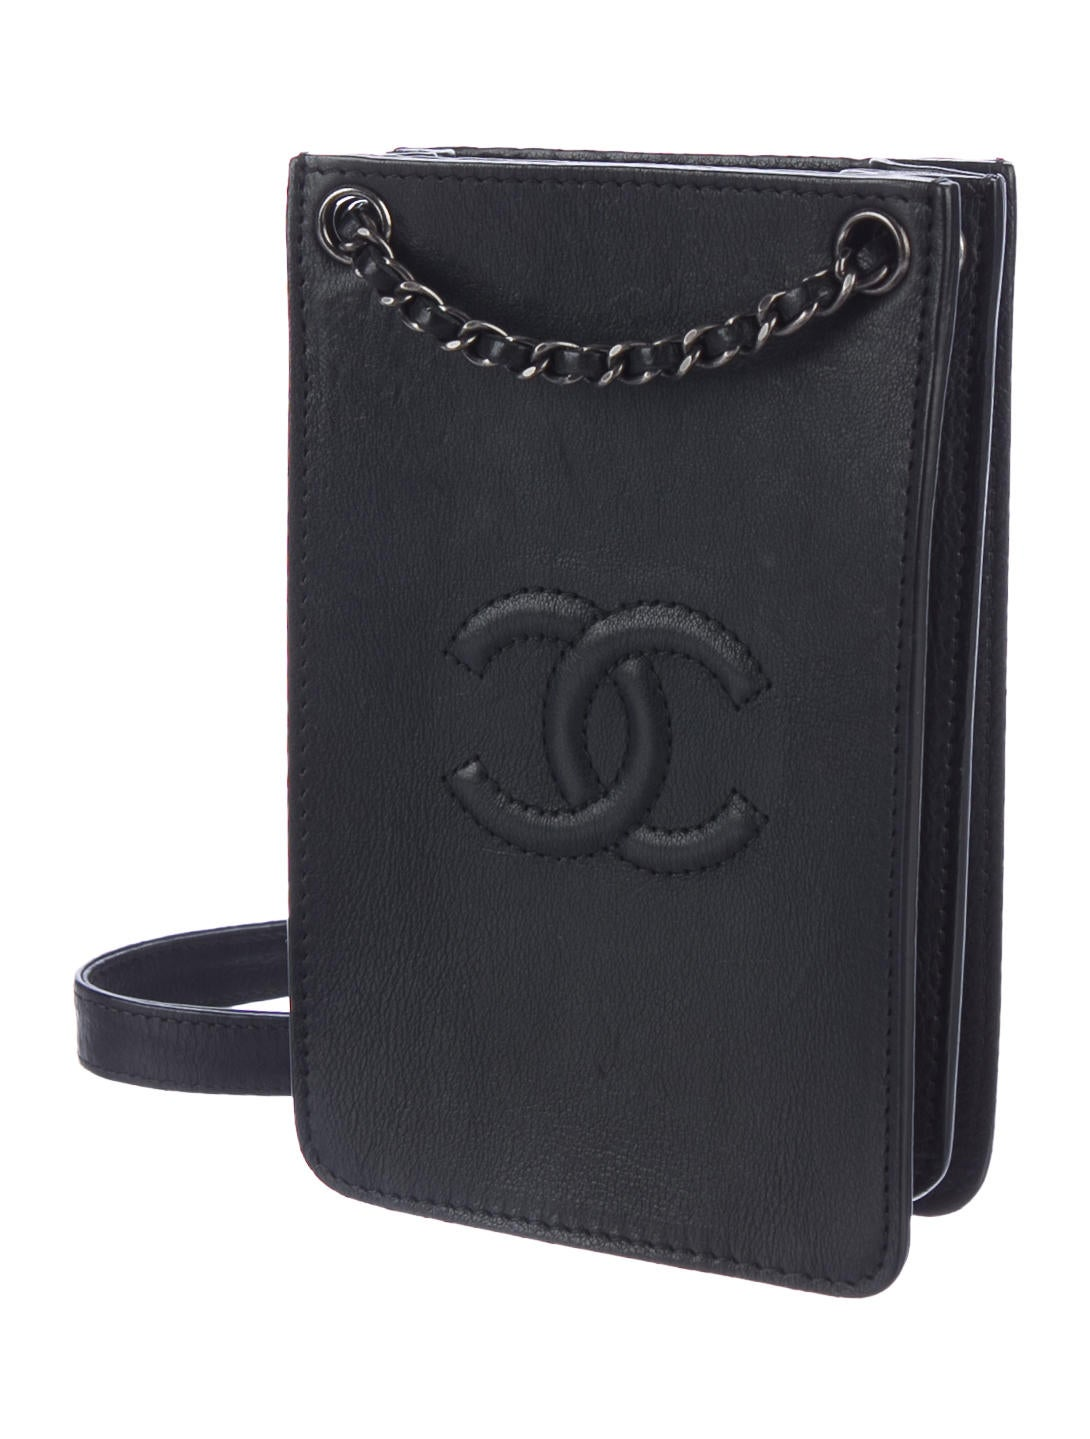 Chanel Crossbody Phone Holder - Accessories - CHA191411 ...